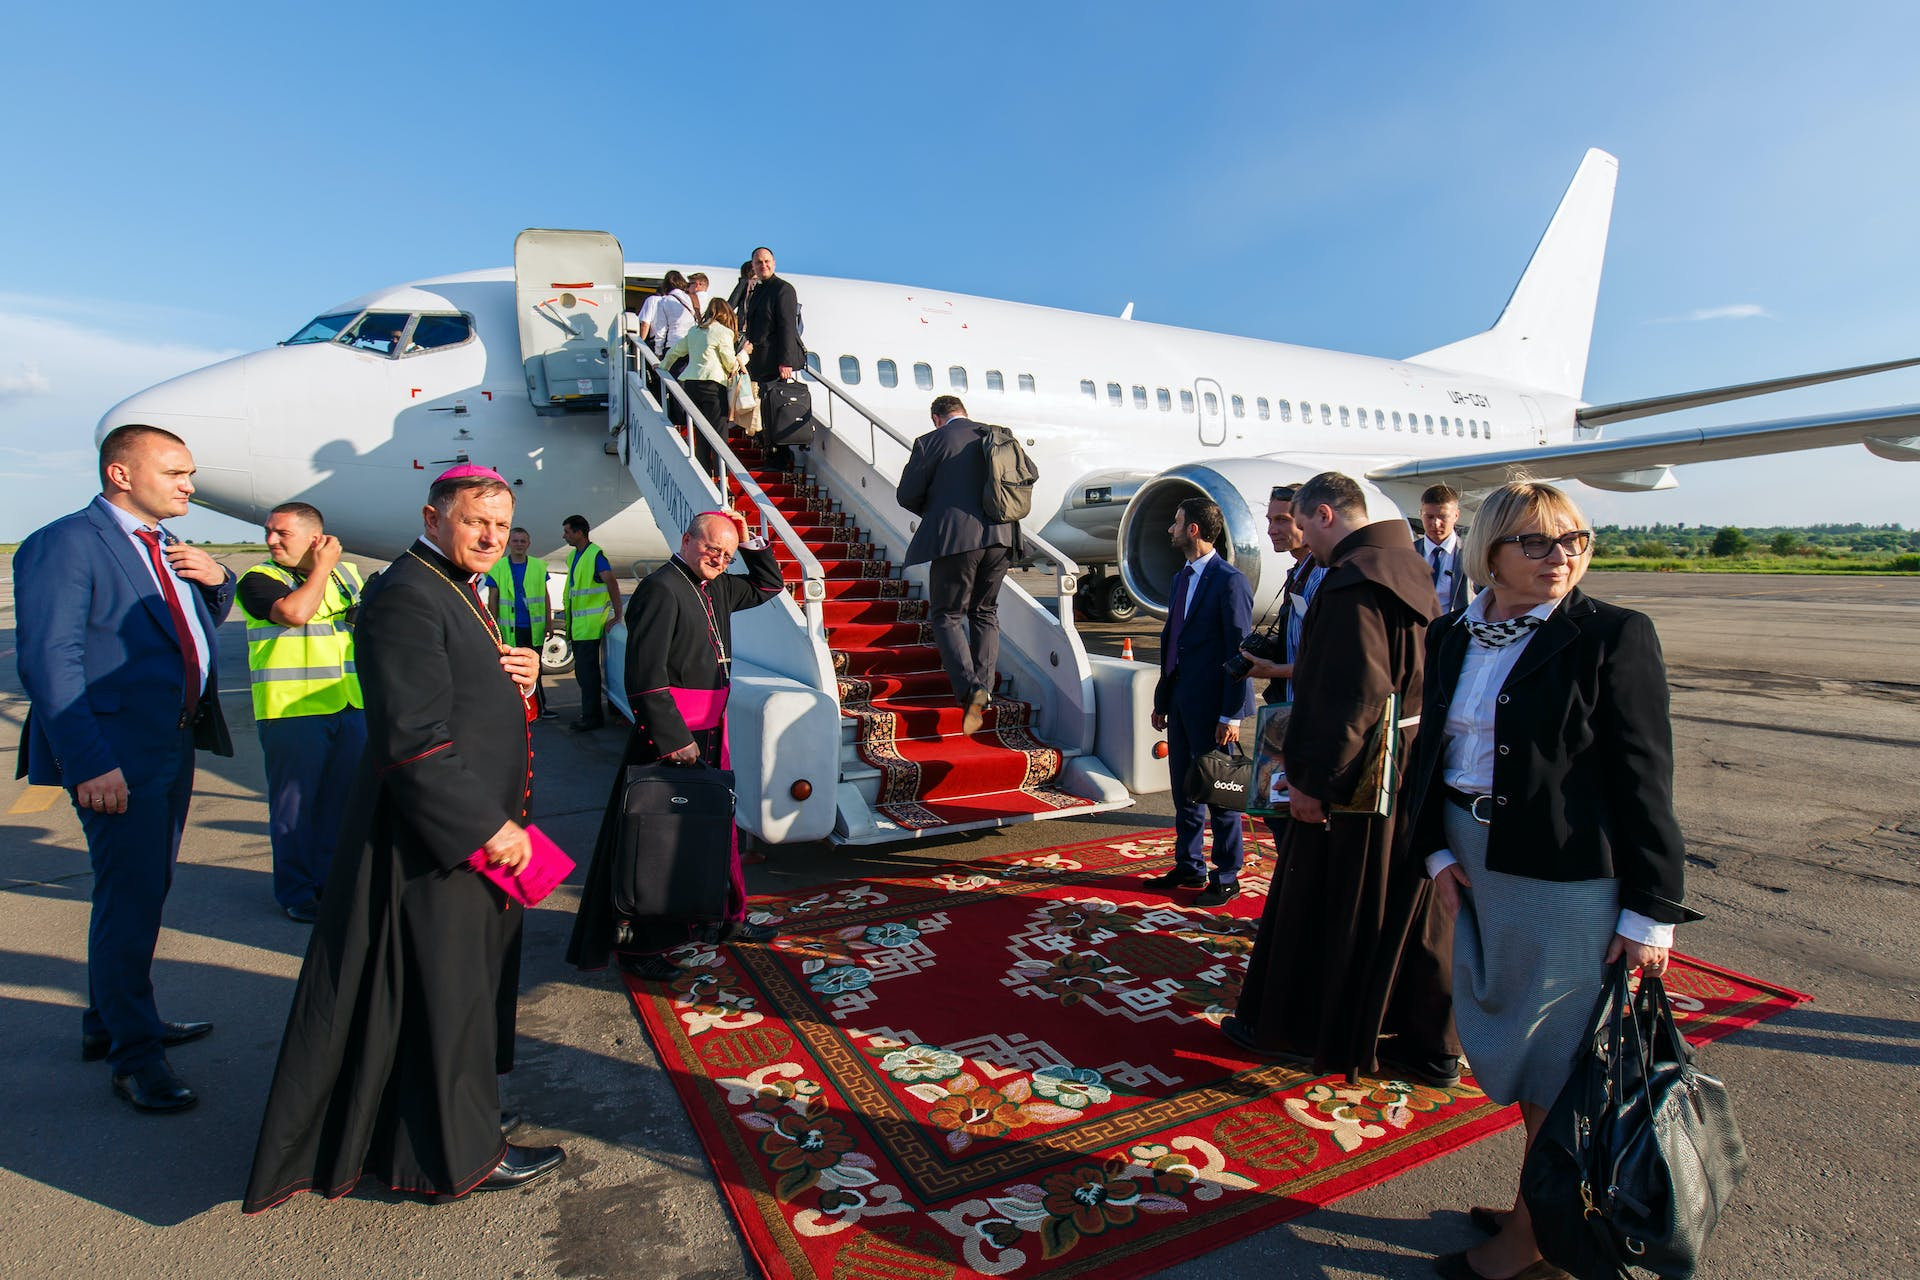 Private charter flights offer pilgrims comfort for their religious travel plans. #caption: Charter flights are made-to-measure and offer unparalleled levels of comfort, safety and privacy.